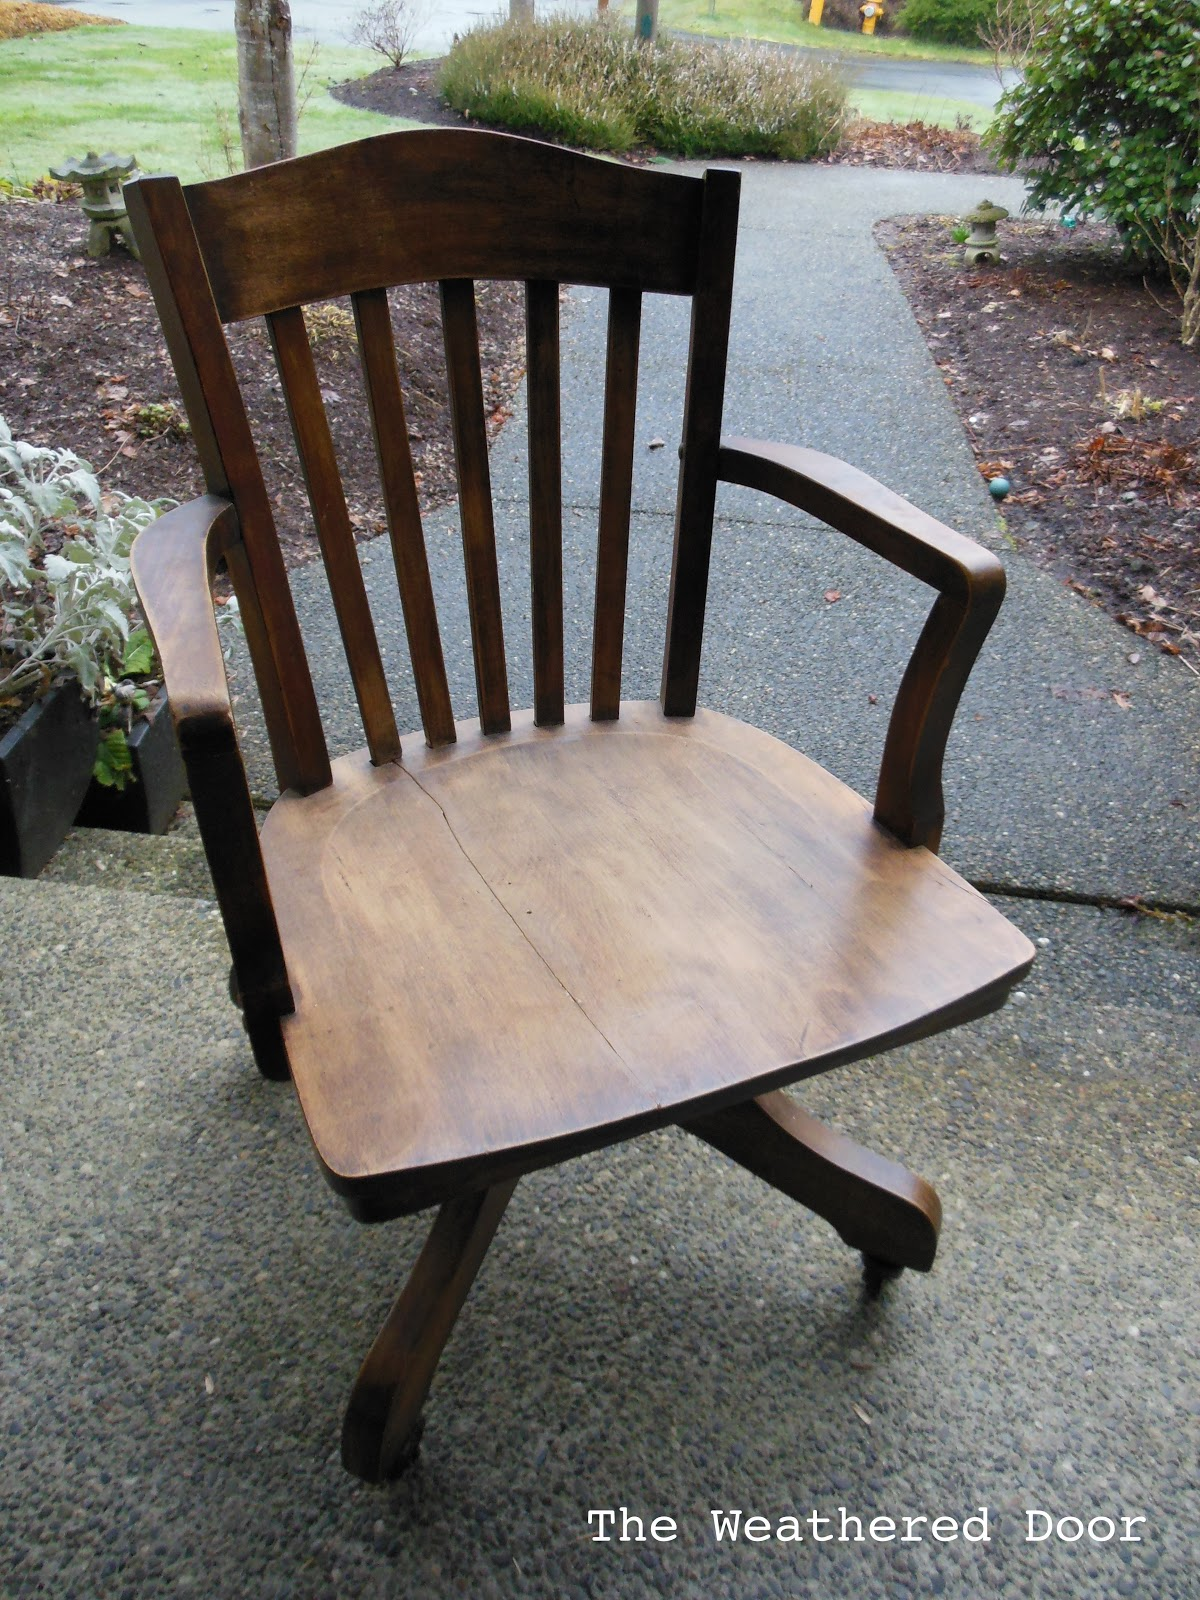 Wood Bankers Chair Slate Banker 39s Chair The Weathered Door